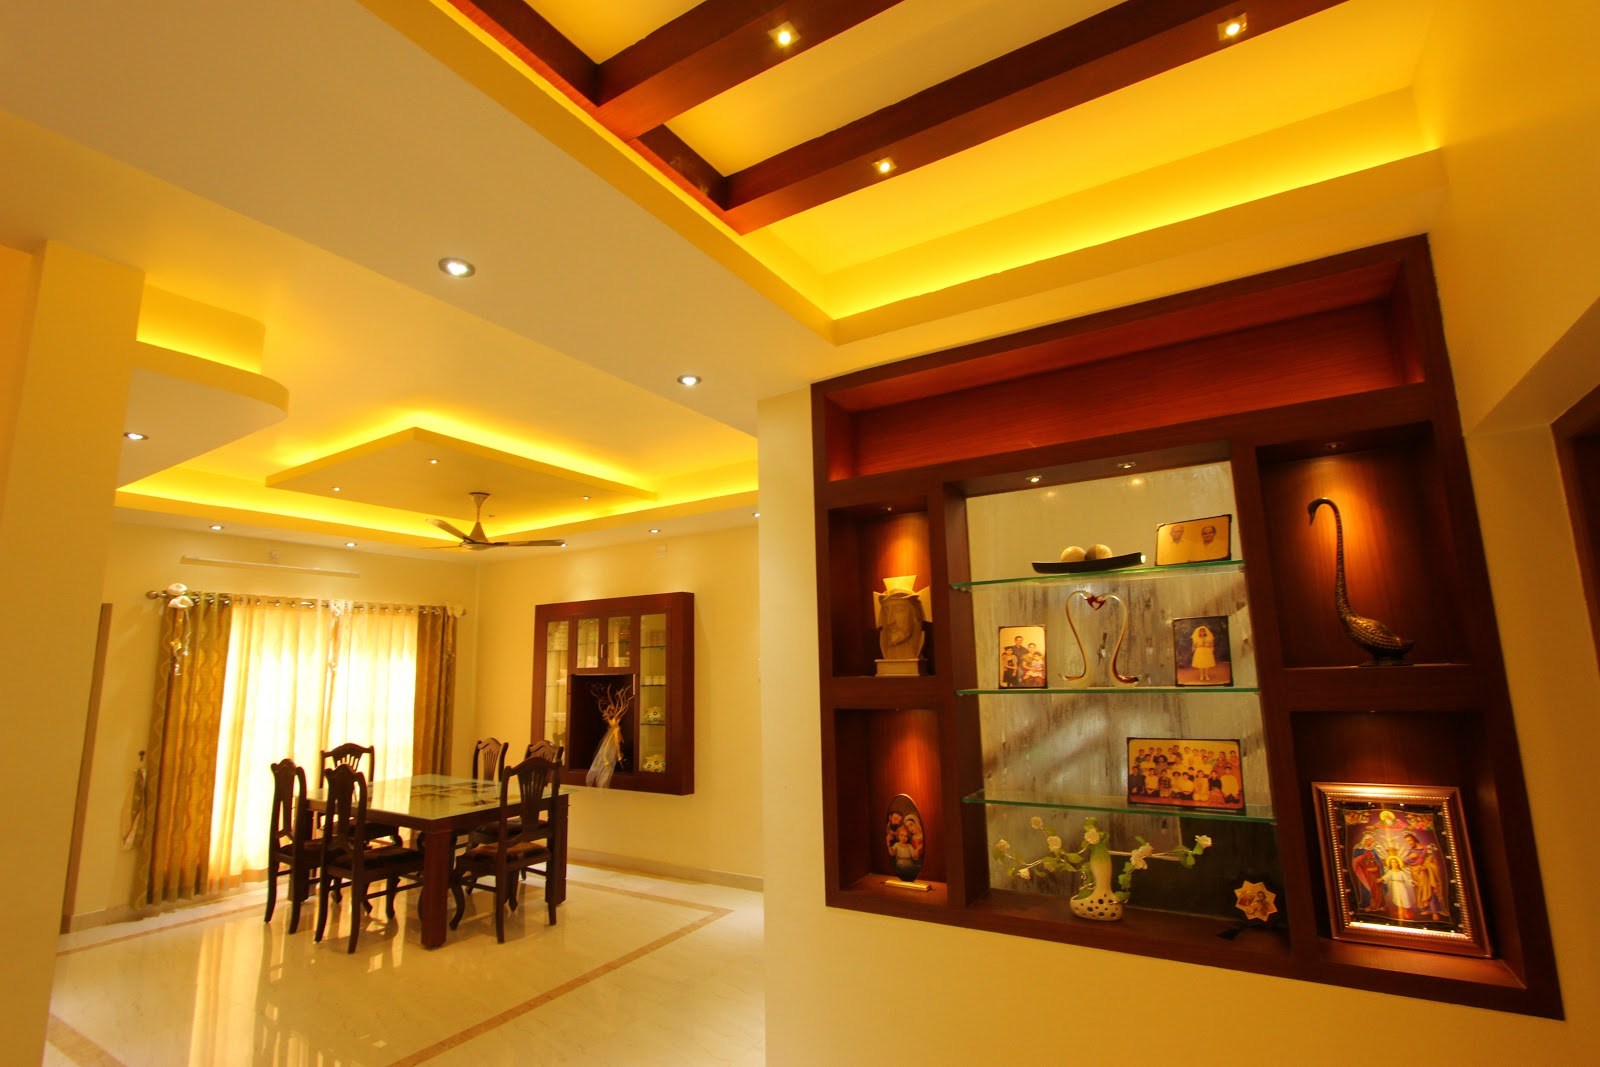 Shilpakala interiors award winning home interior design for Kerala home interior